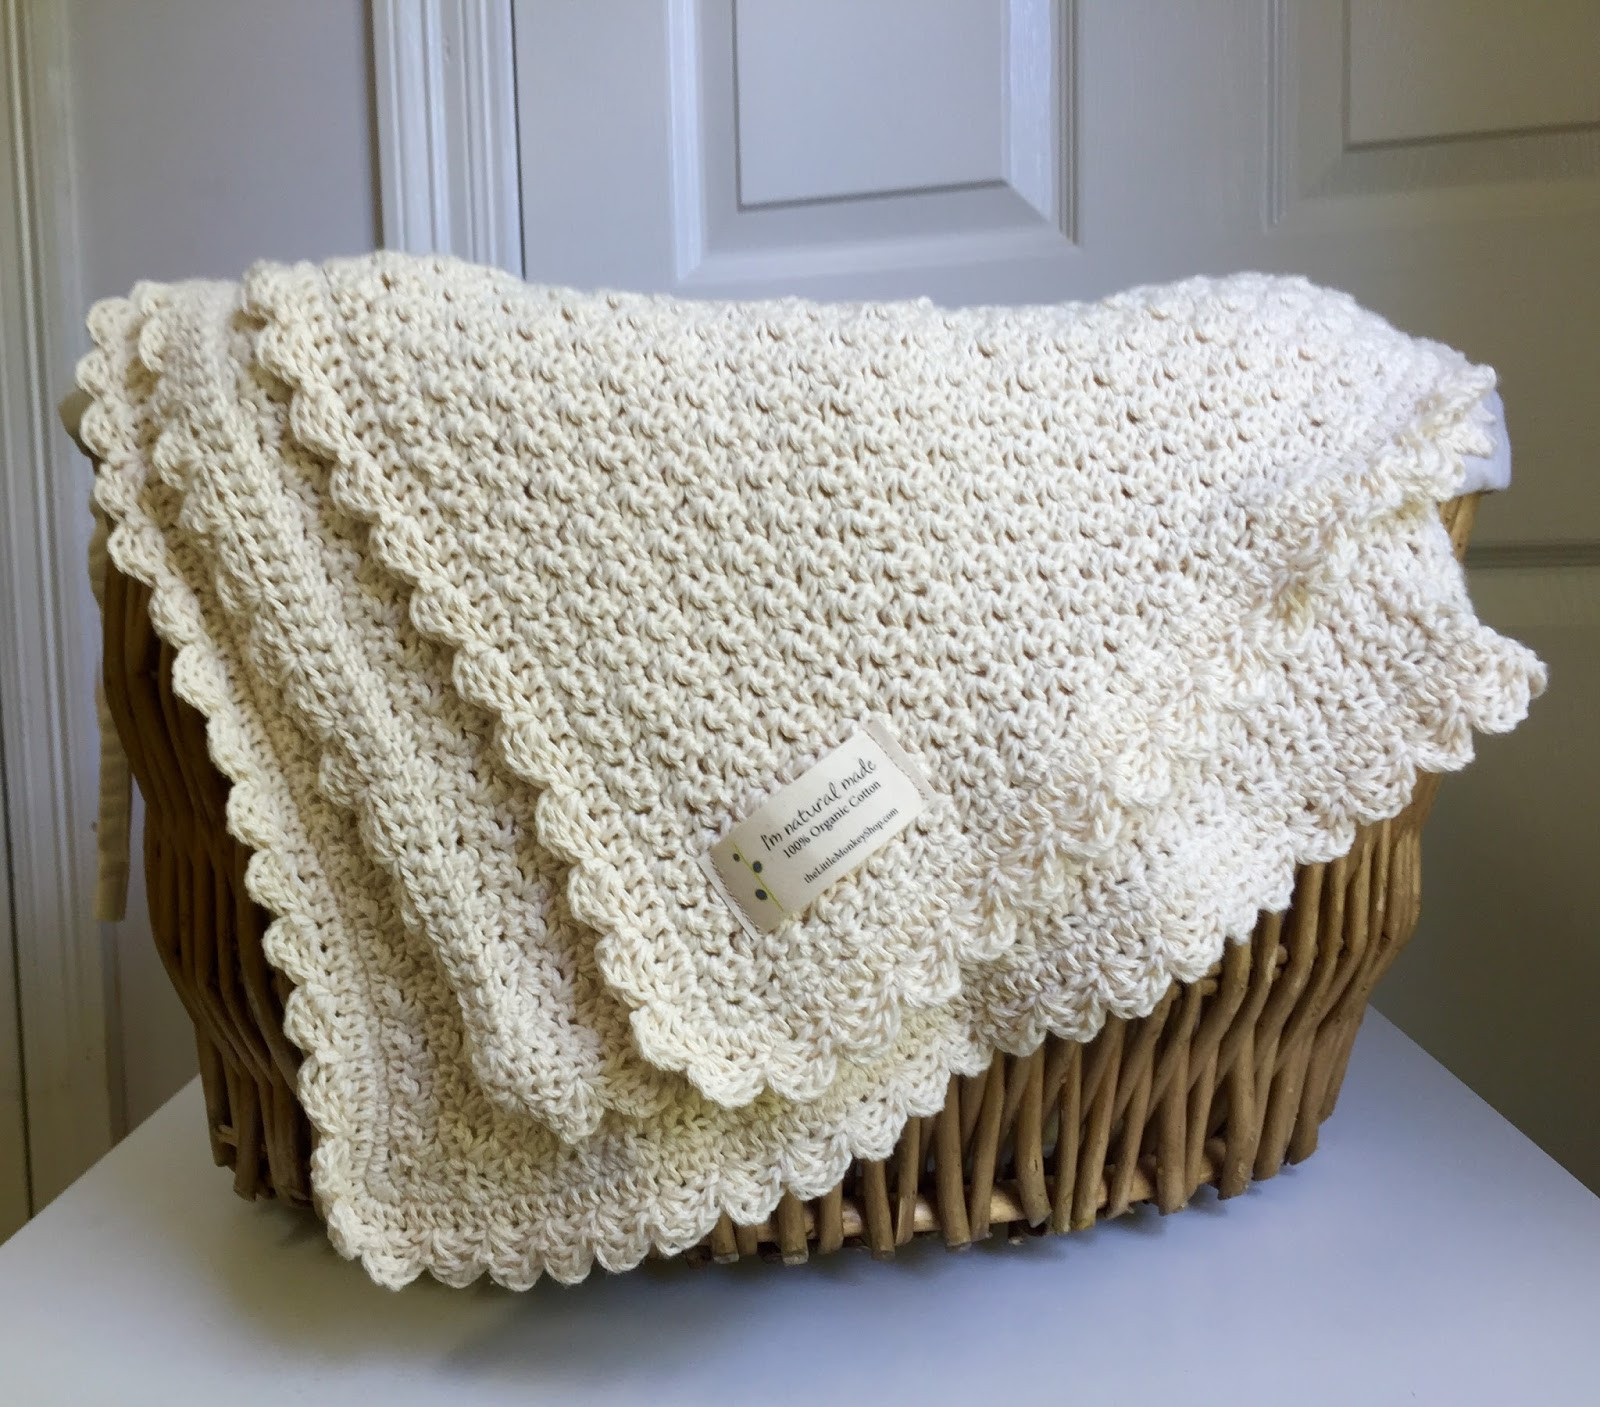 Best Of Pure and Simple Baby Blanket A Simply Beautiful Crochet Easy Crochet Projects Of Awesome 49 Pics Easy Crochet Projects